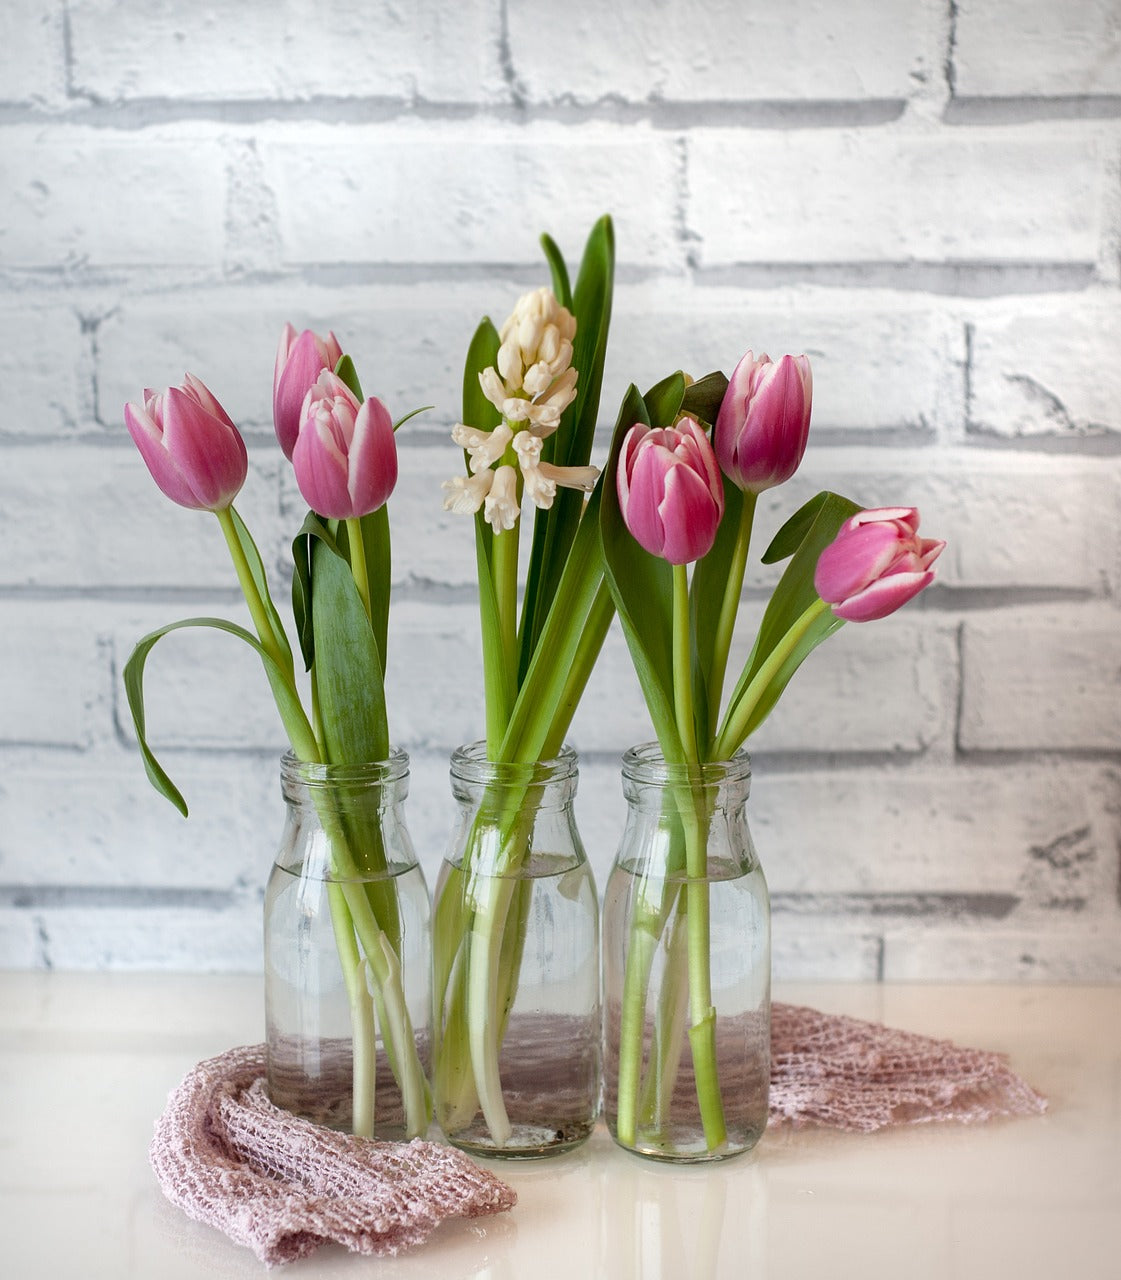 Pink Tulips in Vases